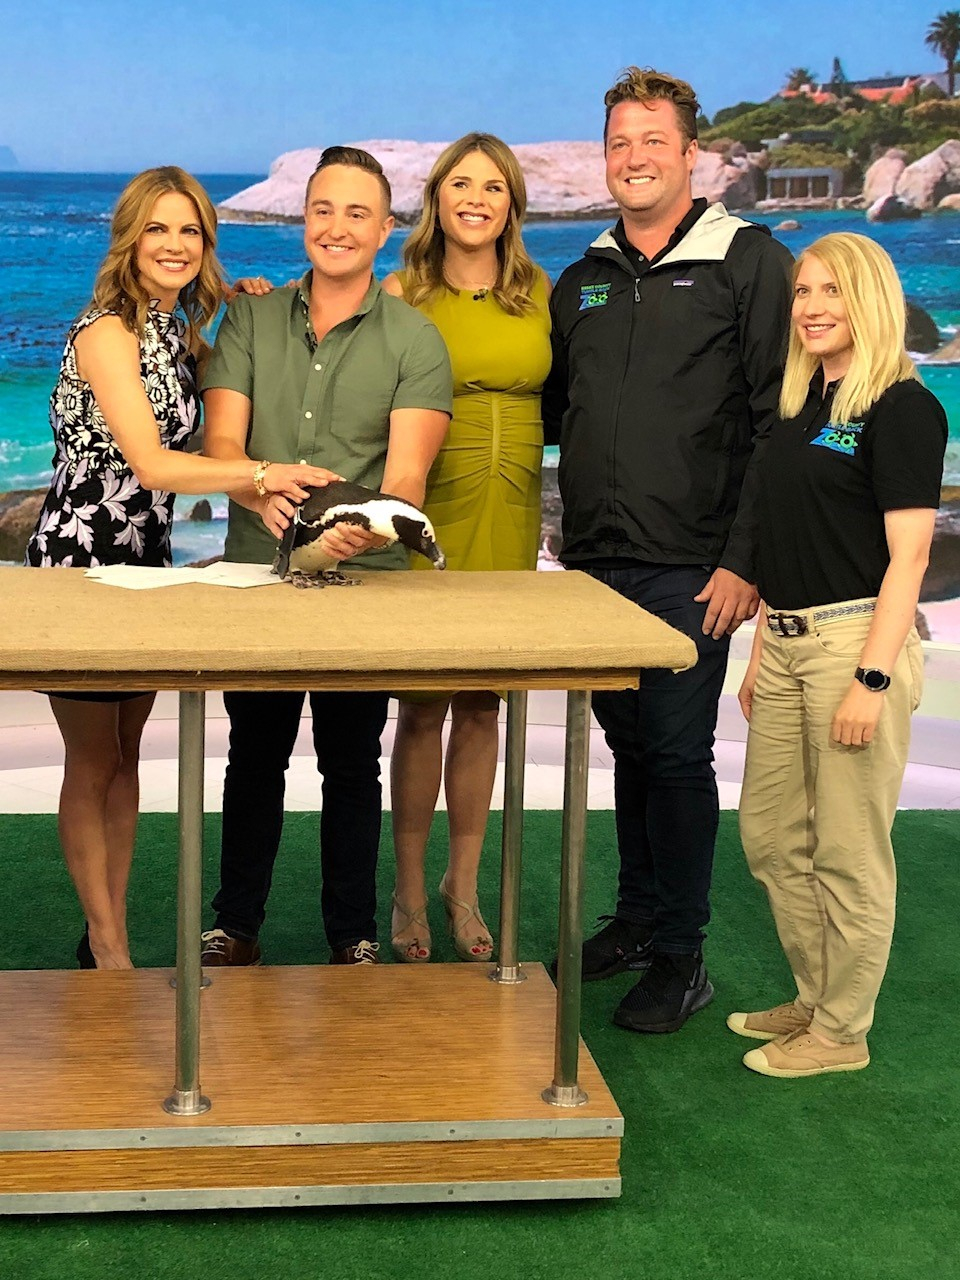 Pictured with Natalie Morales, Jenna Bush Hager, Mike Kerr, and Caitlin Sharp from The Turtle Back Zoo.